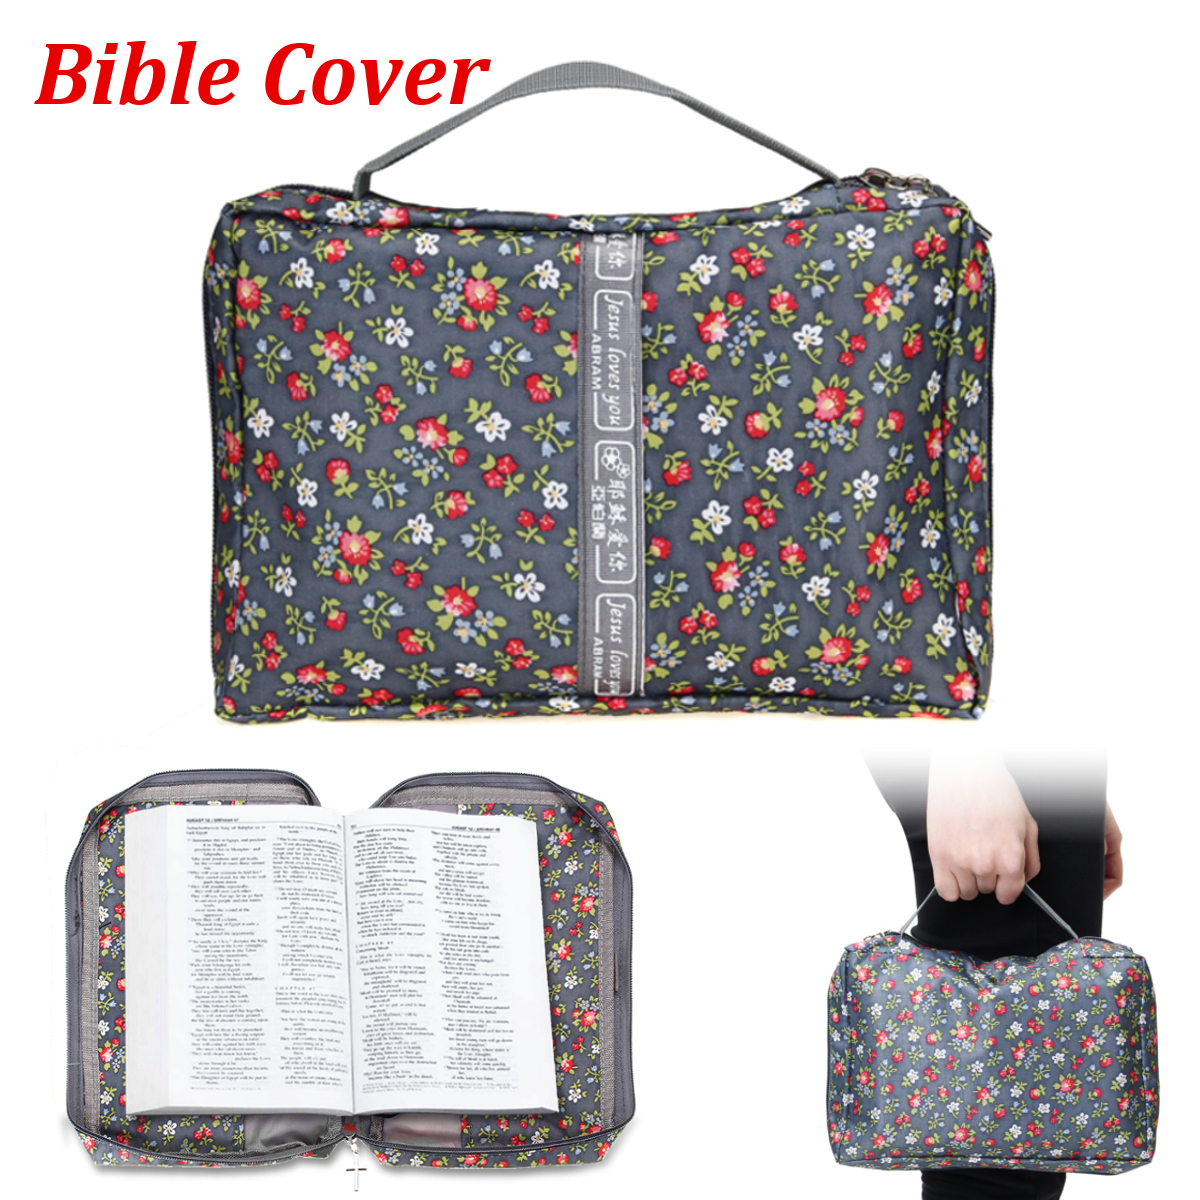 63f3721bdad1 Bible Cover Storage Protective Holy Book Tote Bag Religious Carry ...